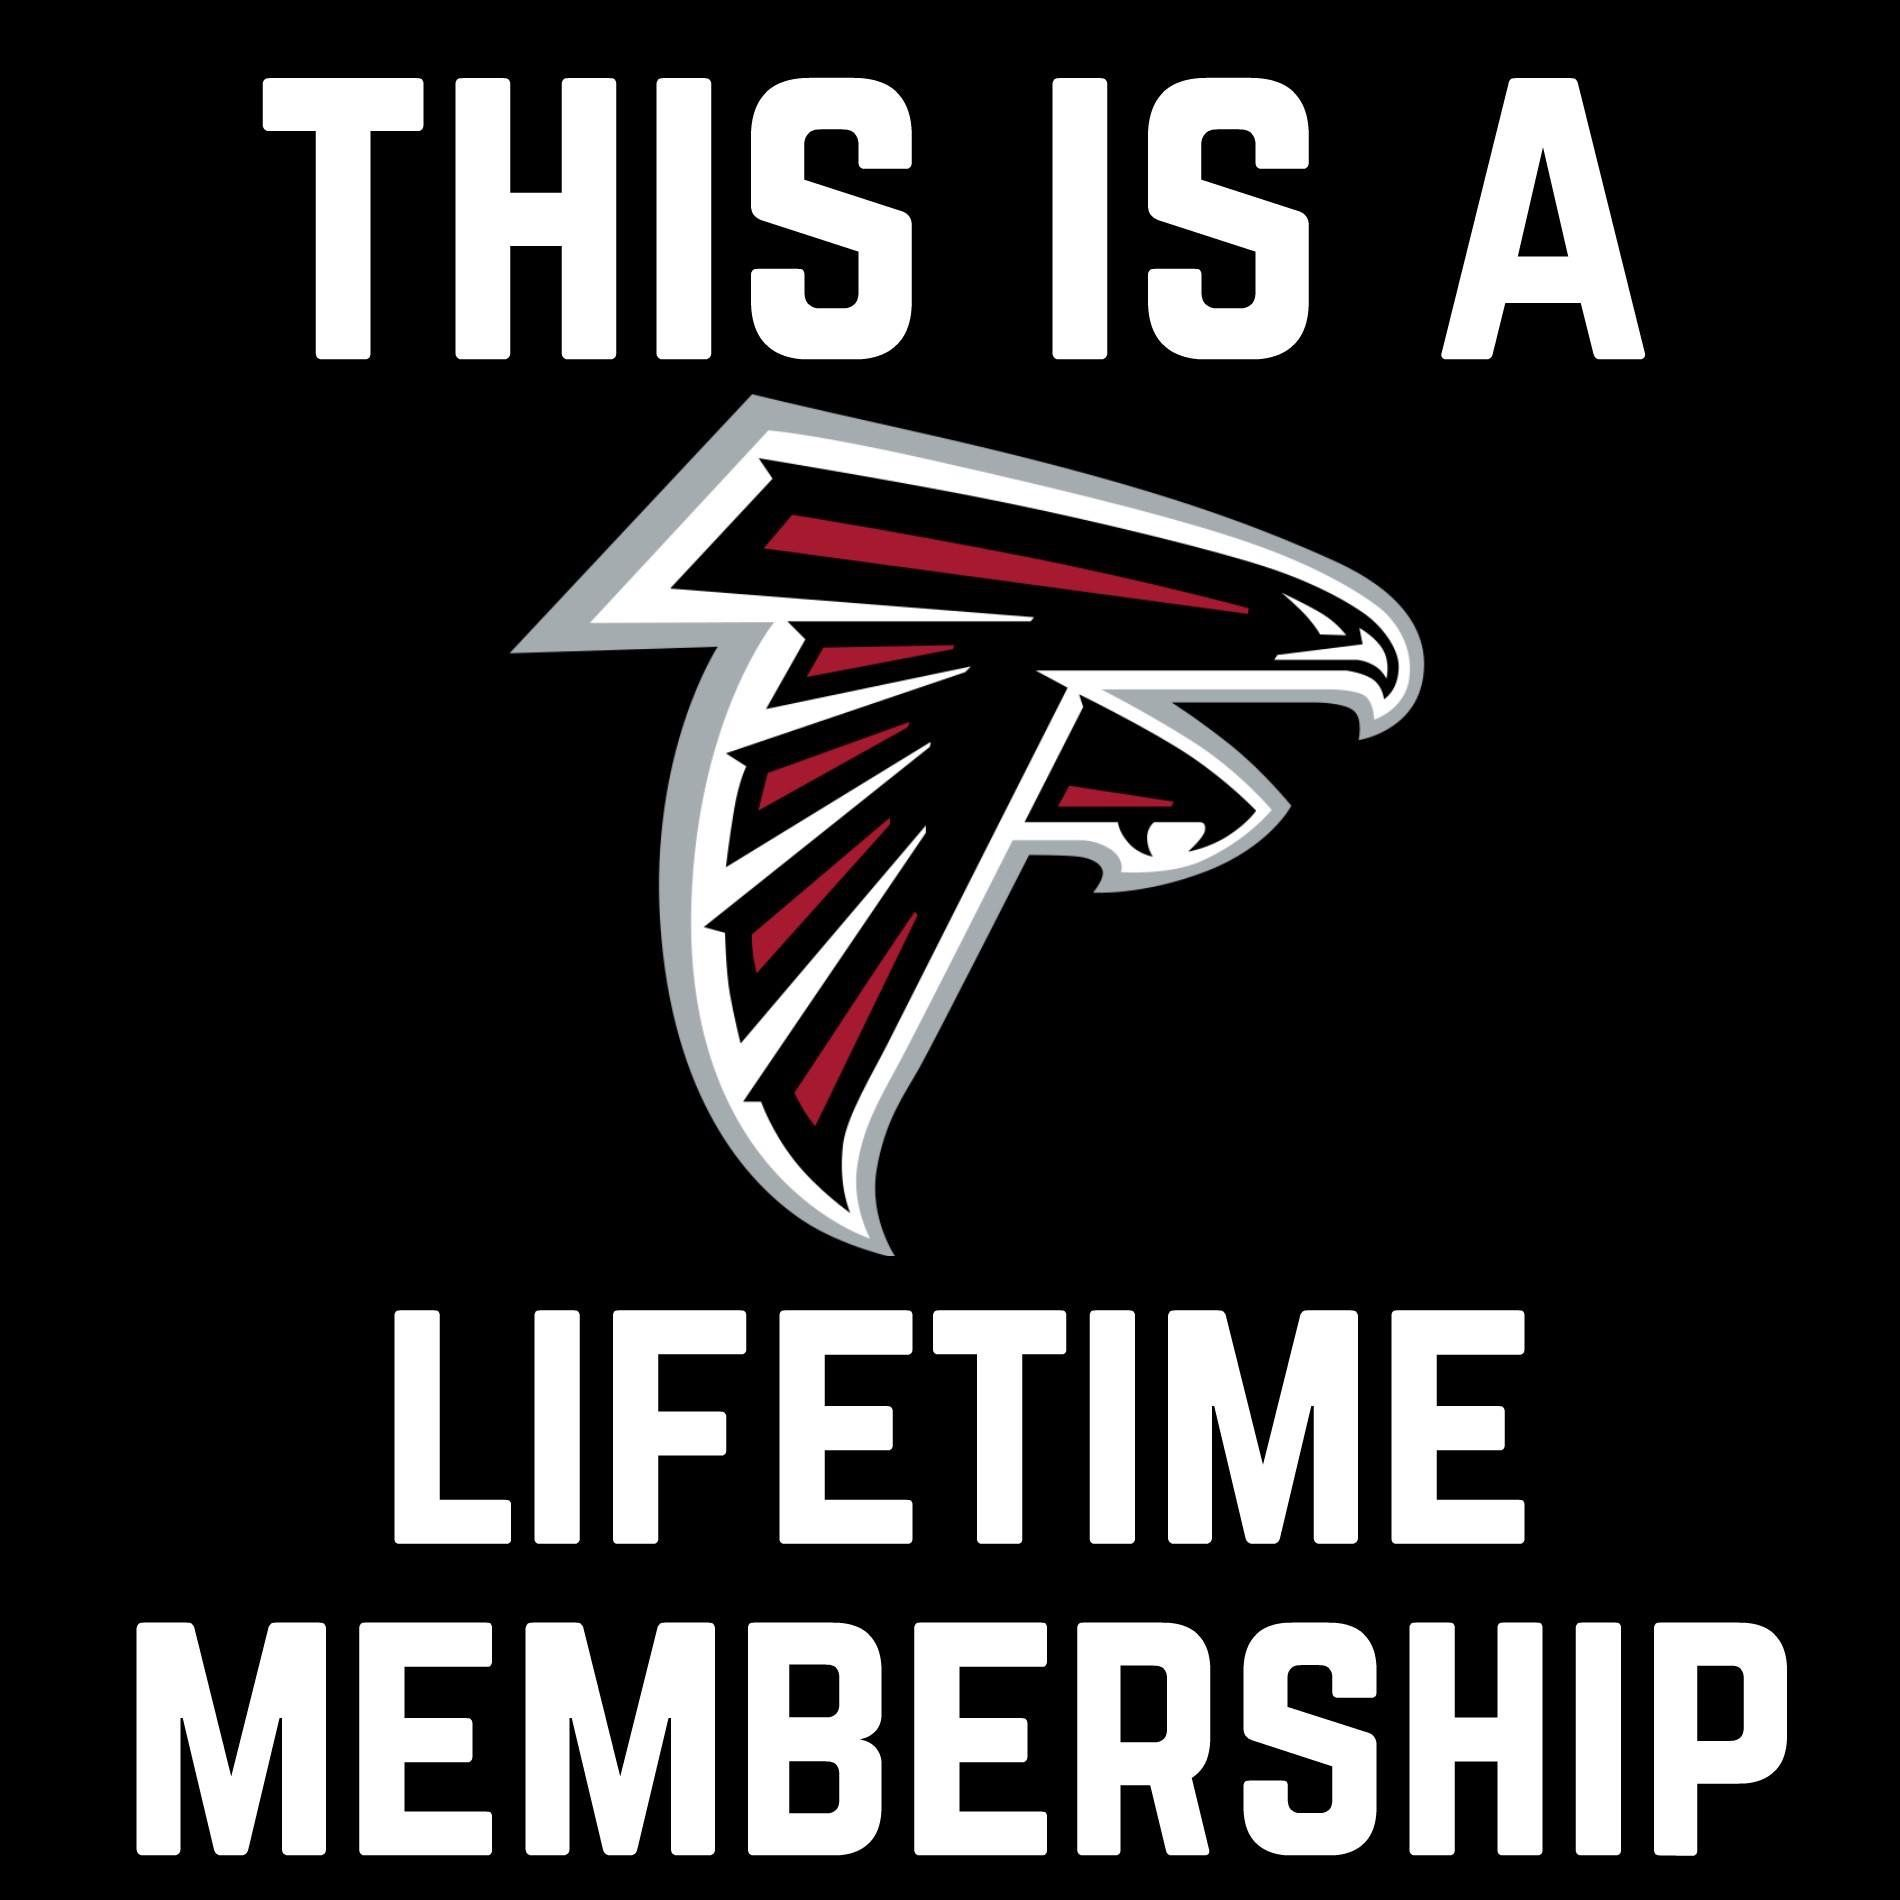 Pin By Shadonna Middleton On My Sports Atlanta Falcons Fans Atlanta Falcons Football Atlanta Falcons